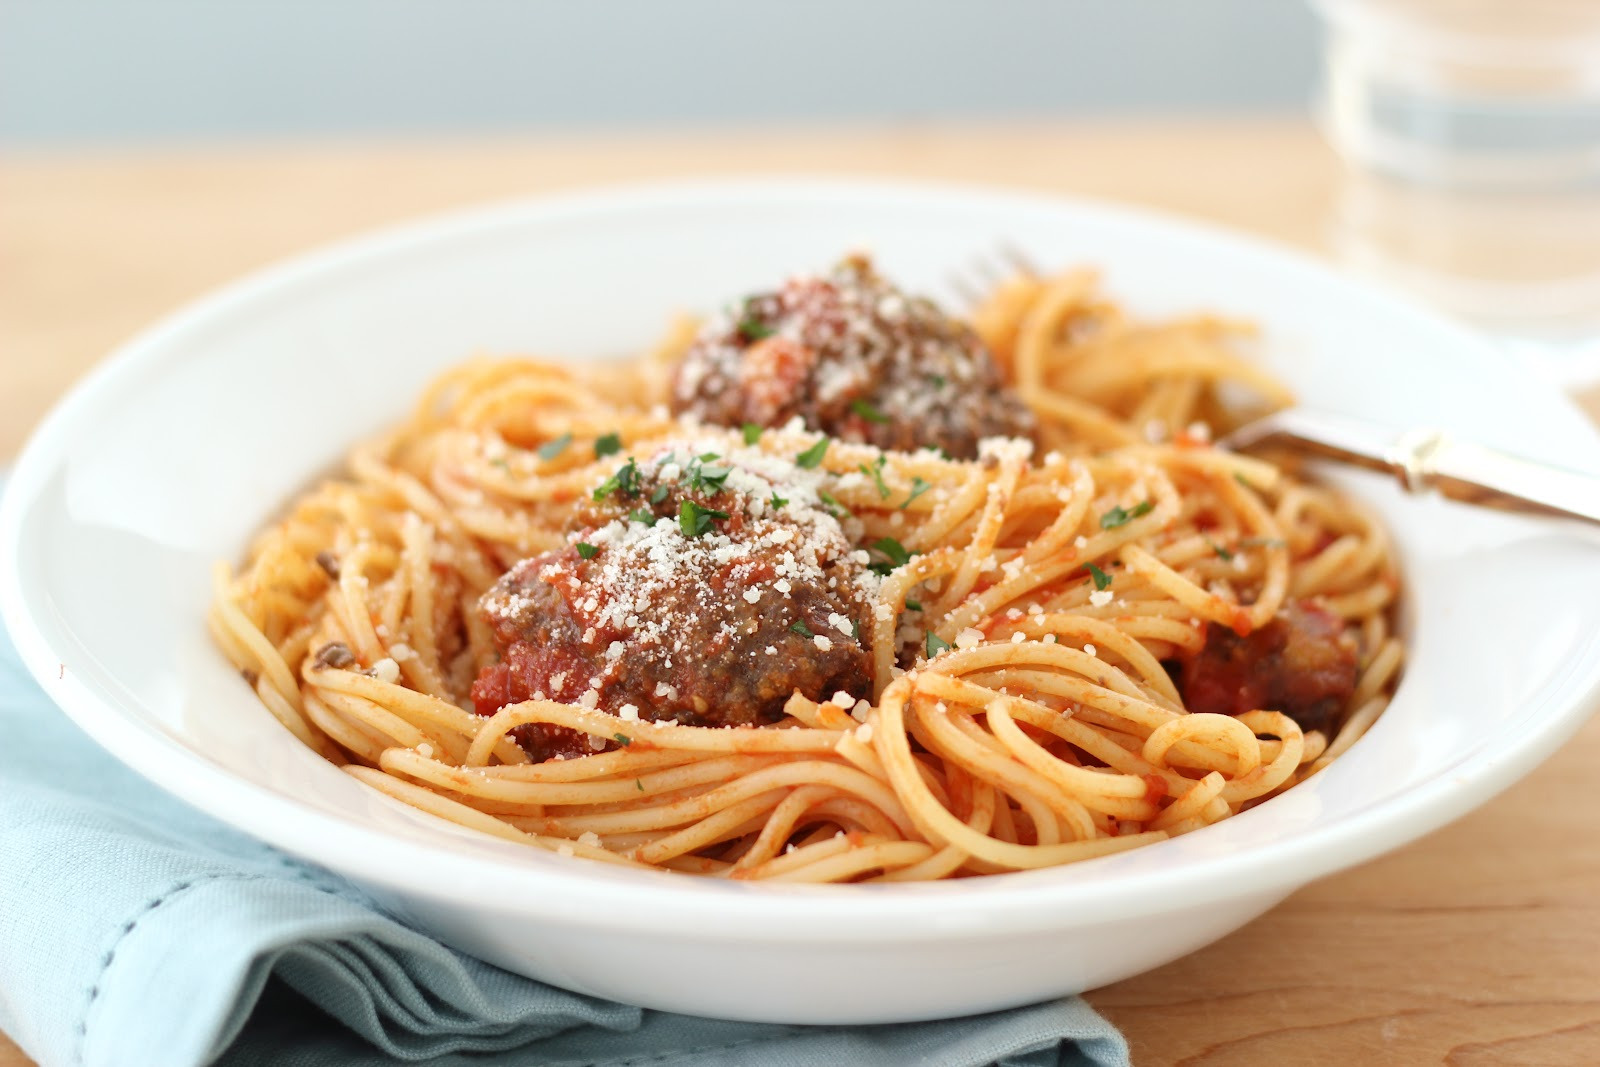 Shorely Chic: BEST SPAGHETTI AND MEATBALLS